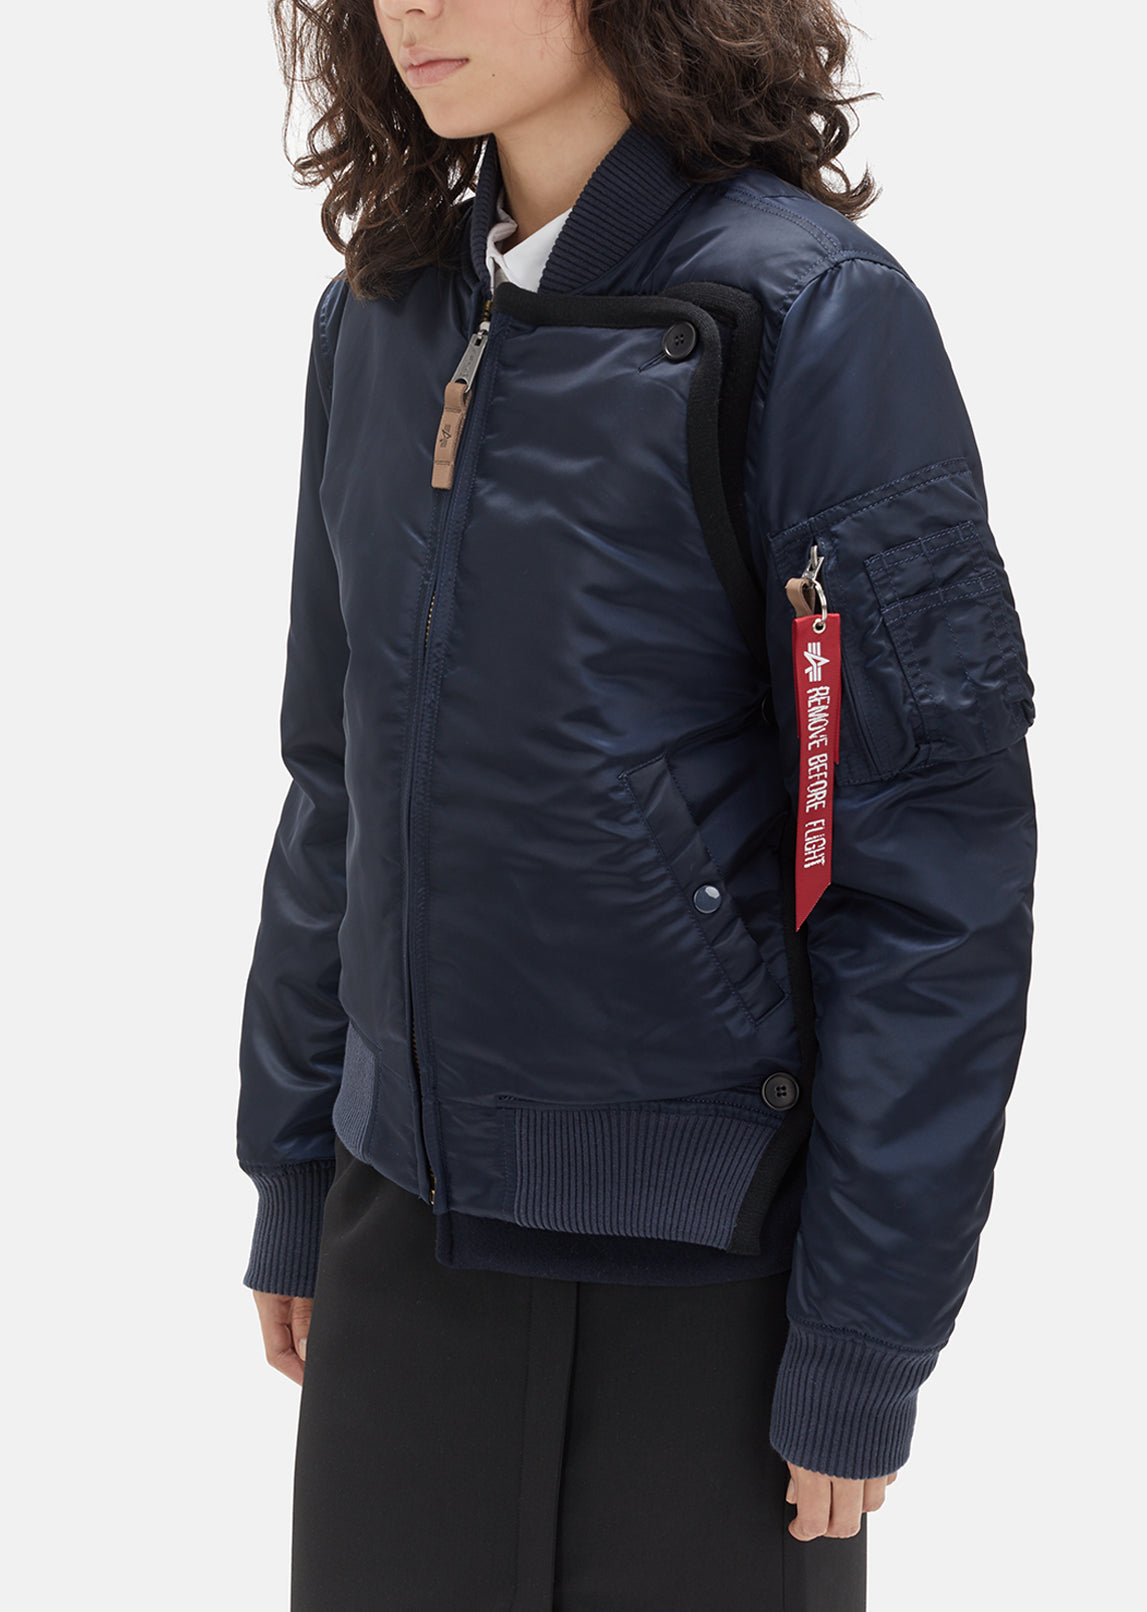 Alpha Industries Nylon Bomber Jacket